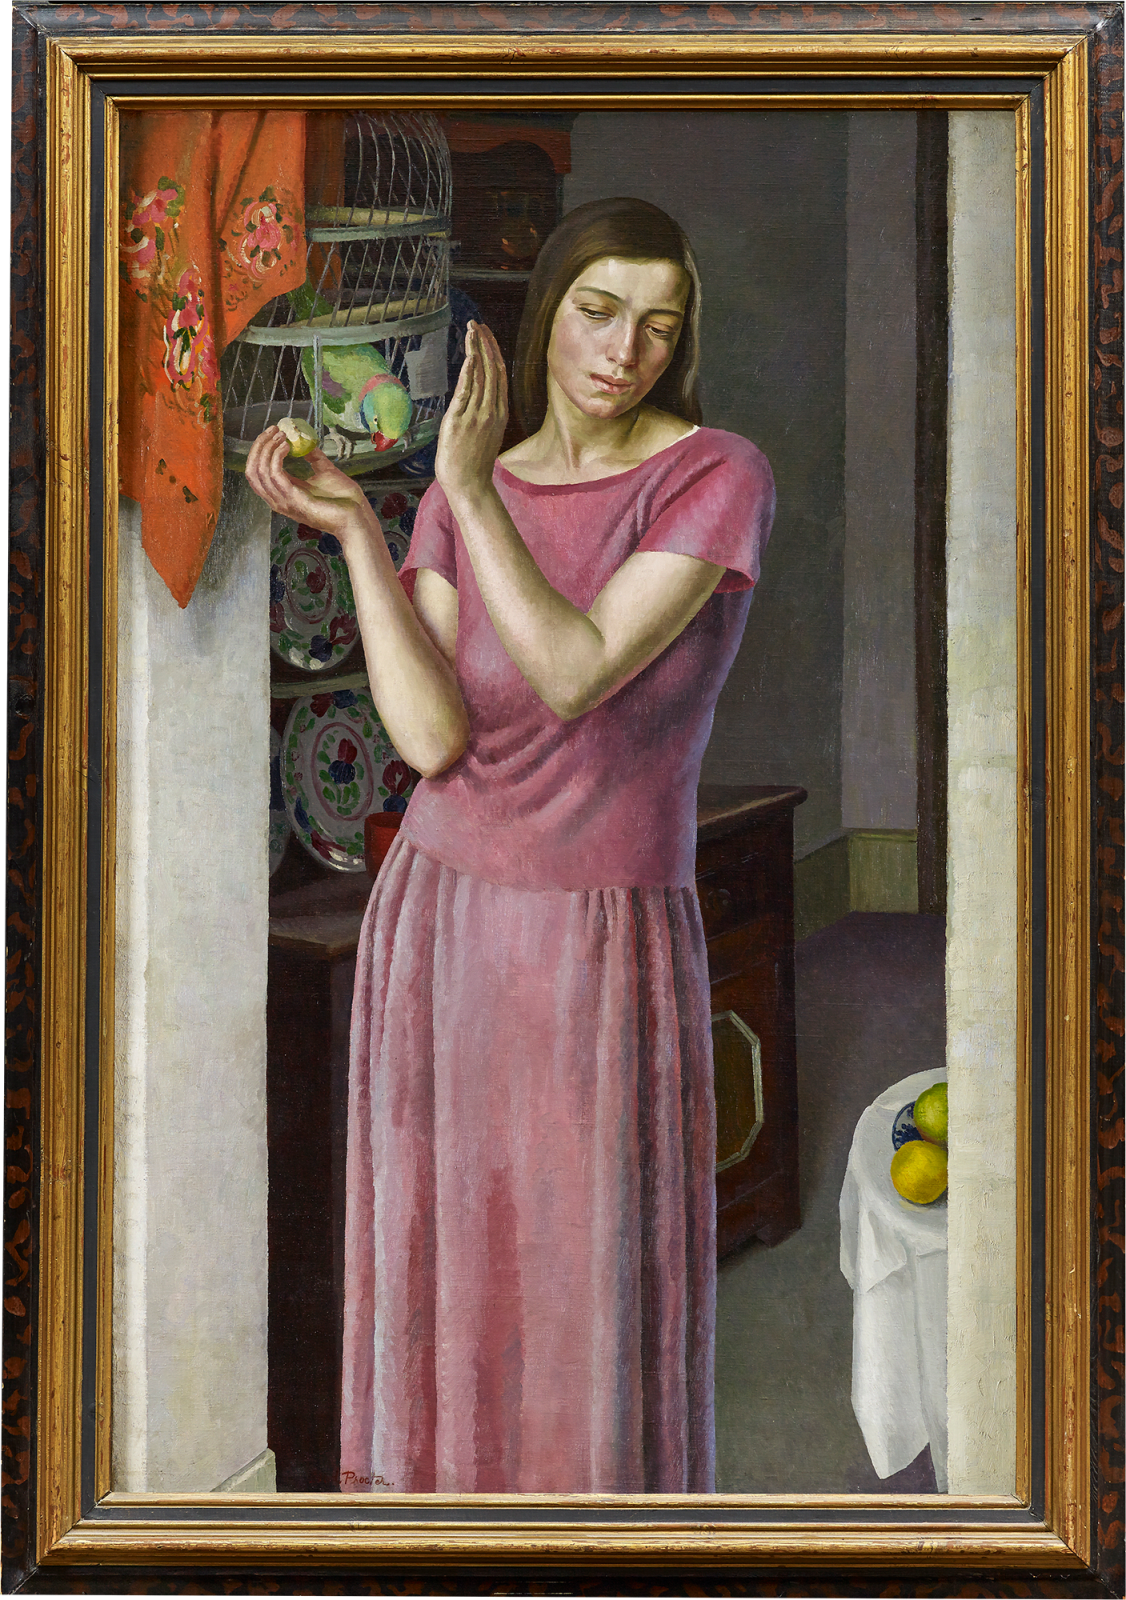 [Fig. 3] Dod Procter Girl with a Parrot c.1925